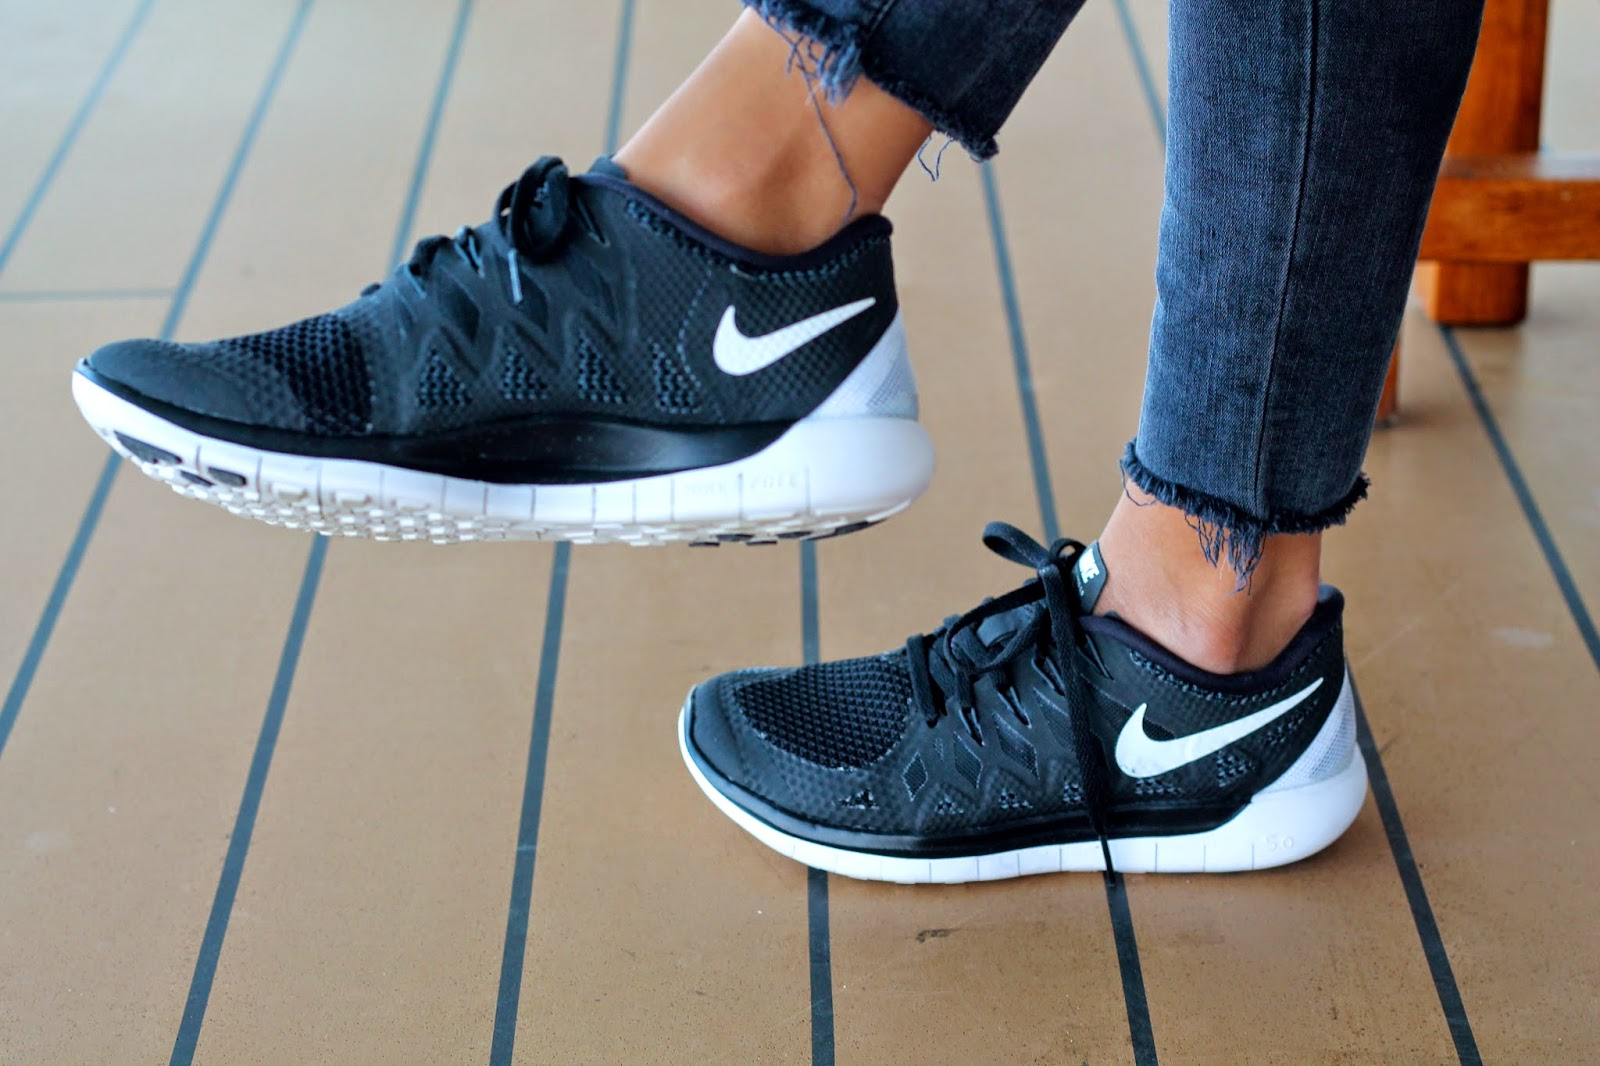 nike free shoes, casual friday look, jbrand jeans, how to wear sneakers